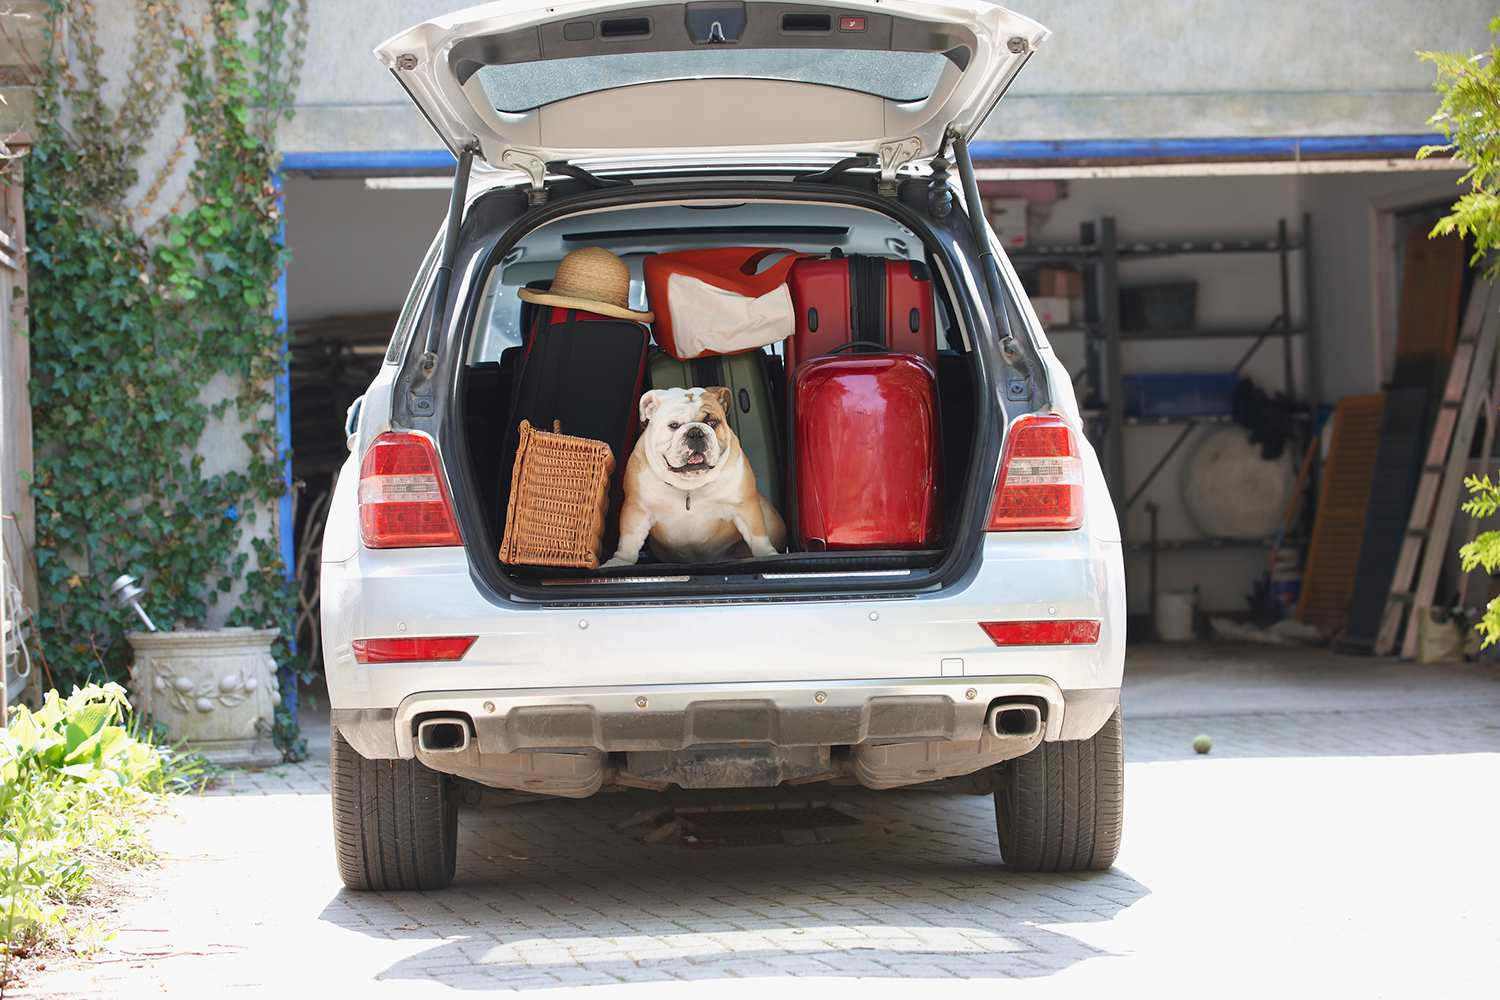 Car packed with a dog